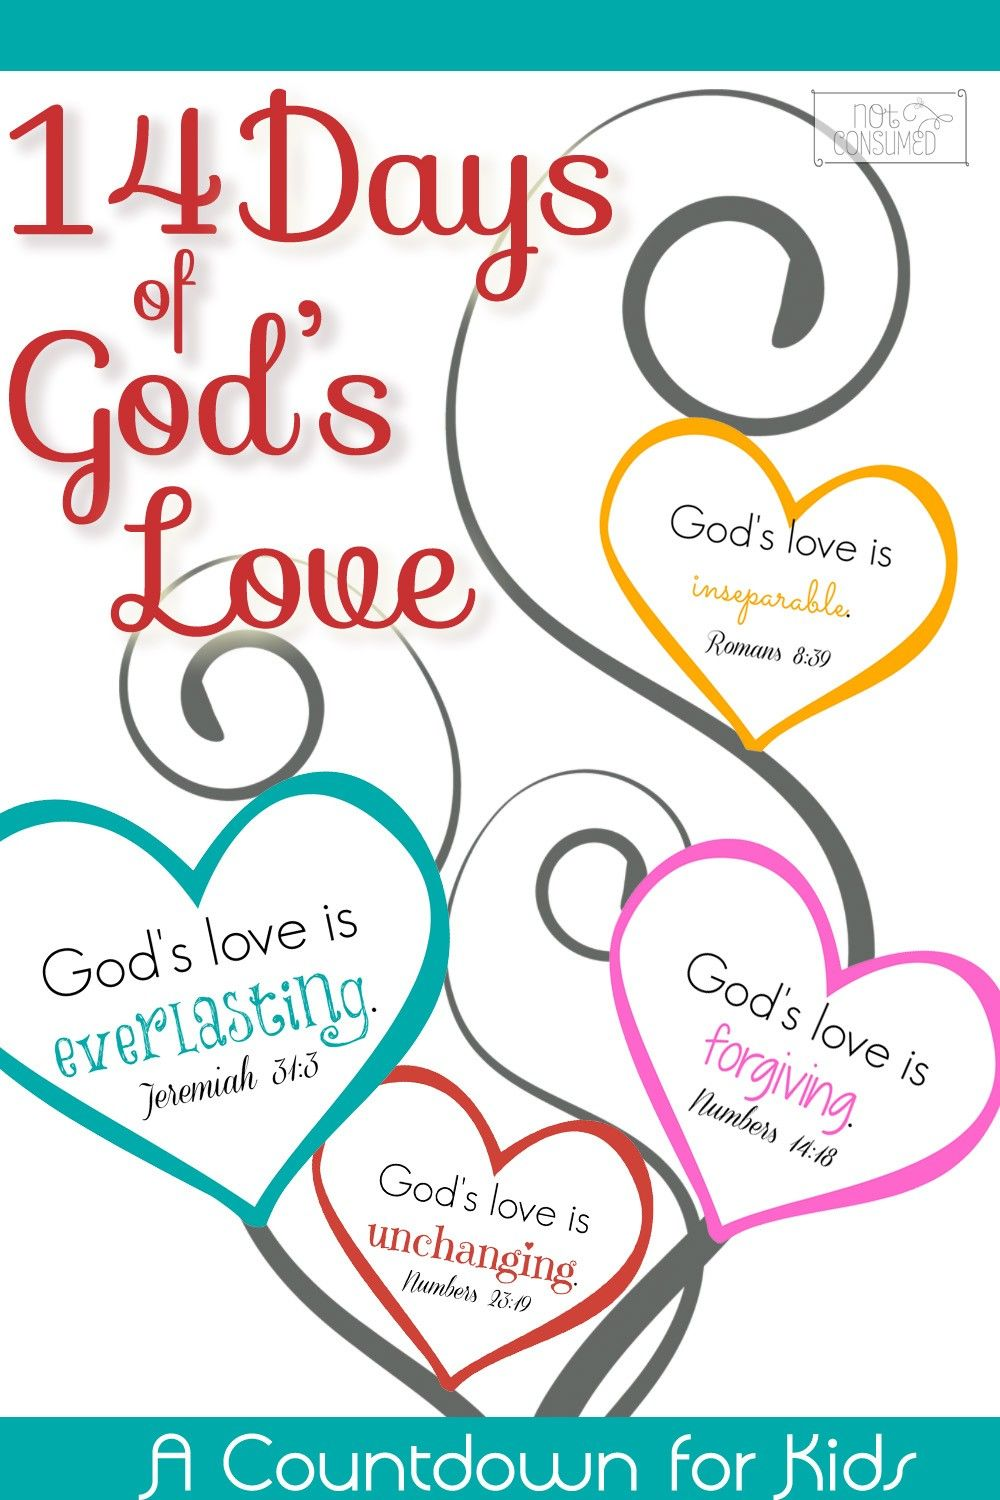 Valentine S Scripture Countdown For Families Best Of Not Consumed